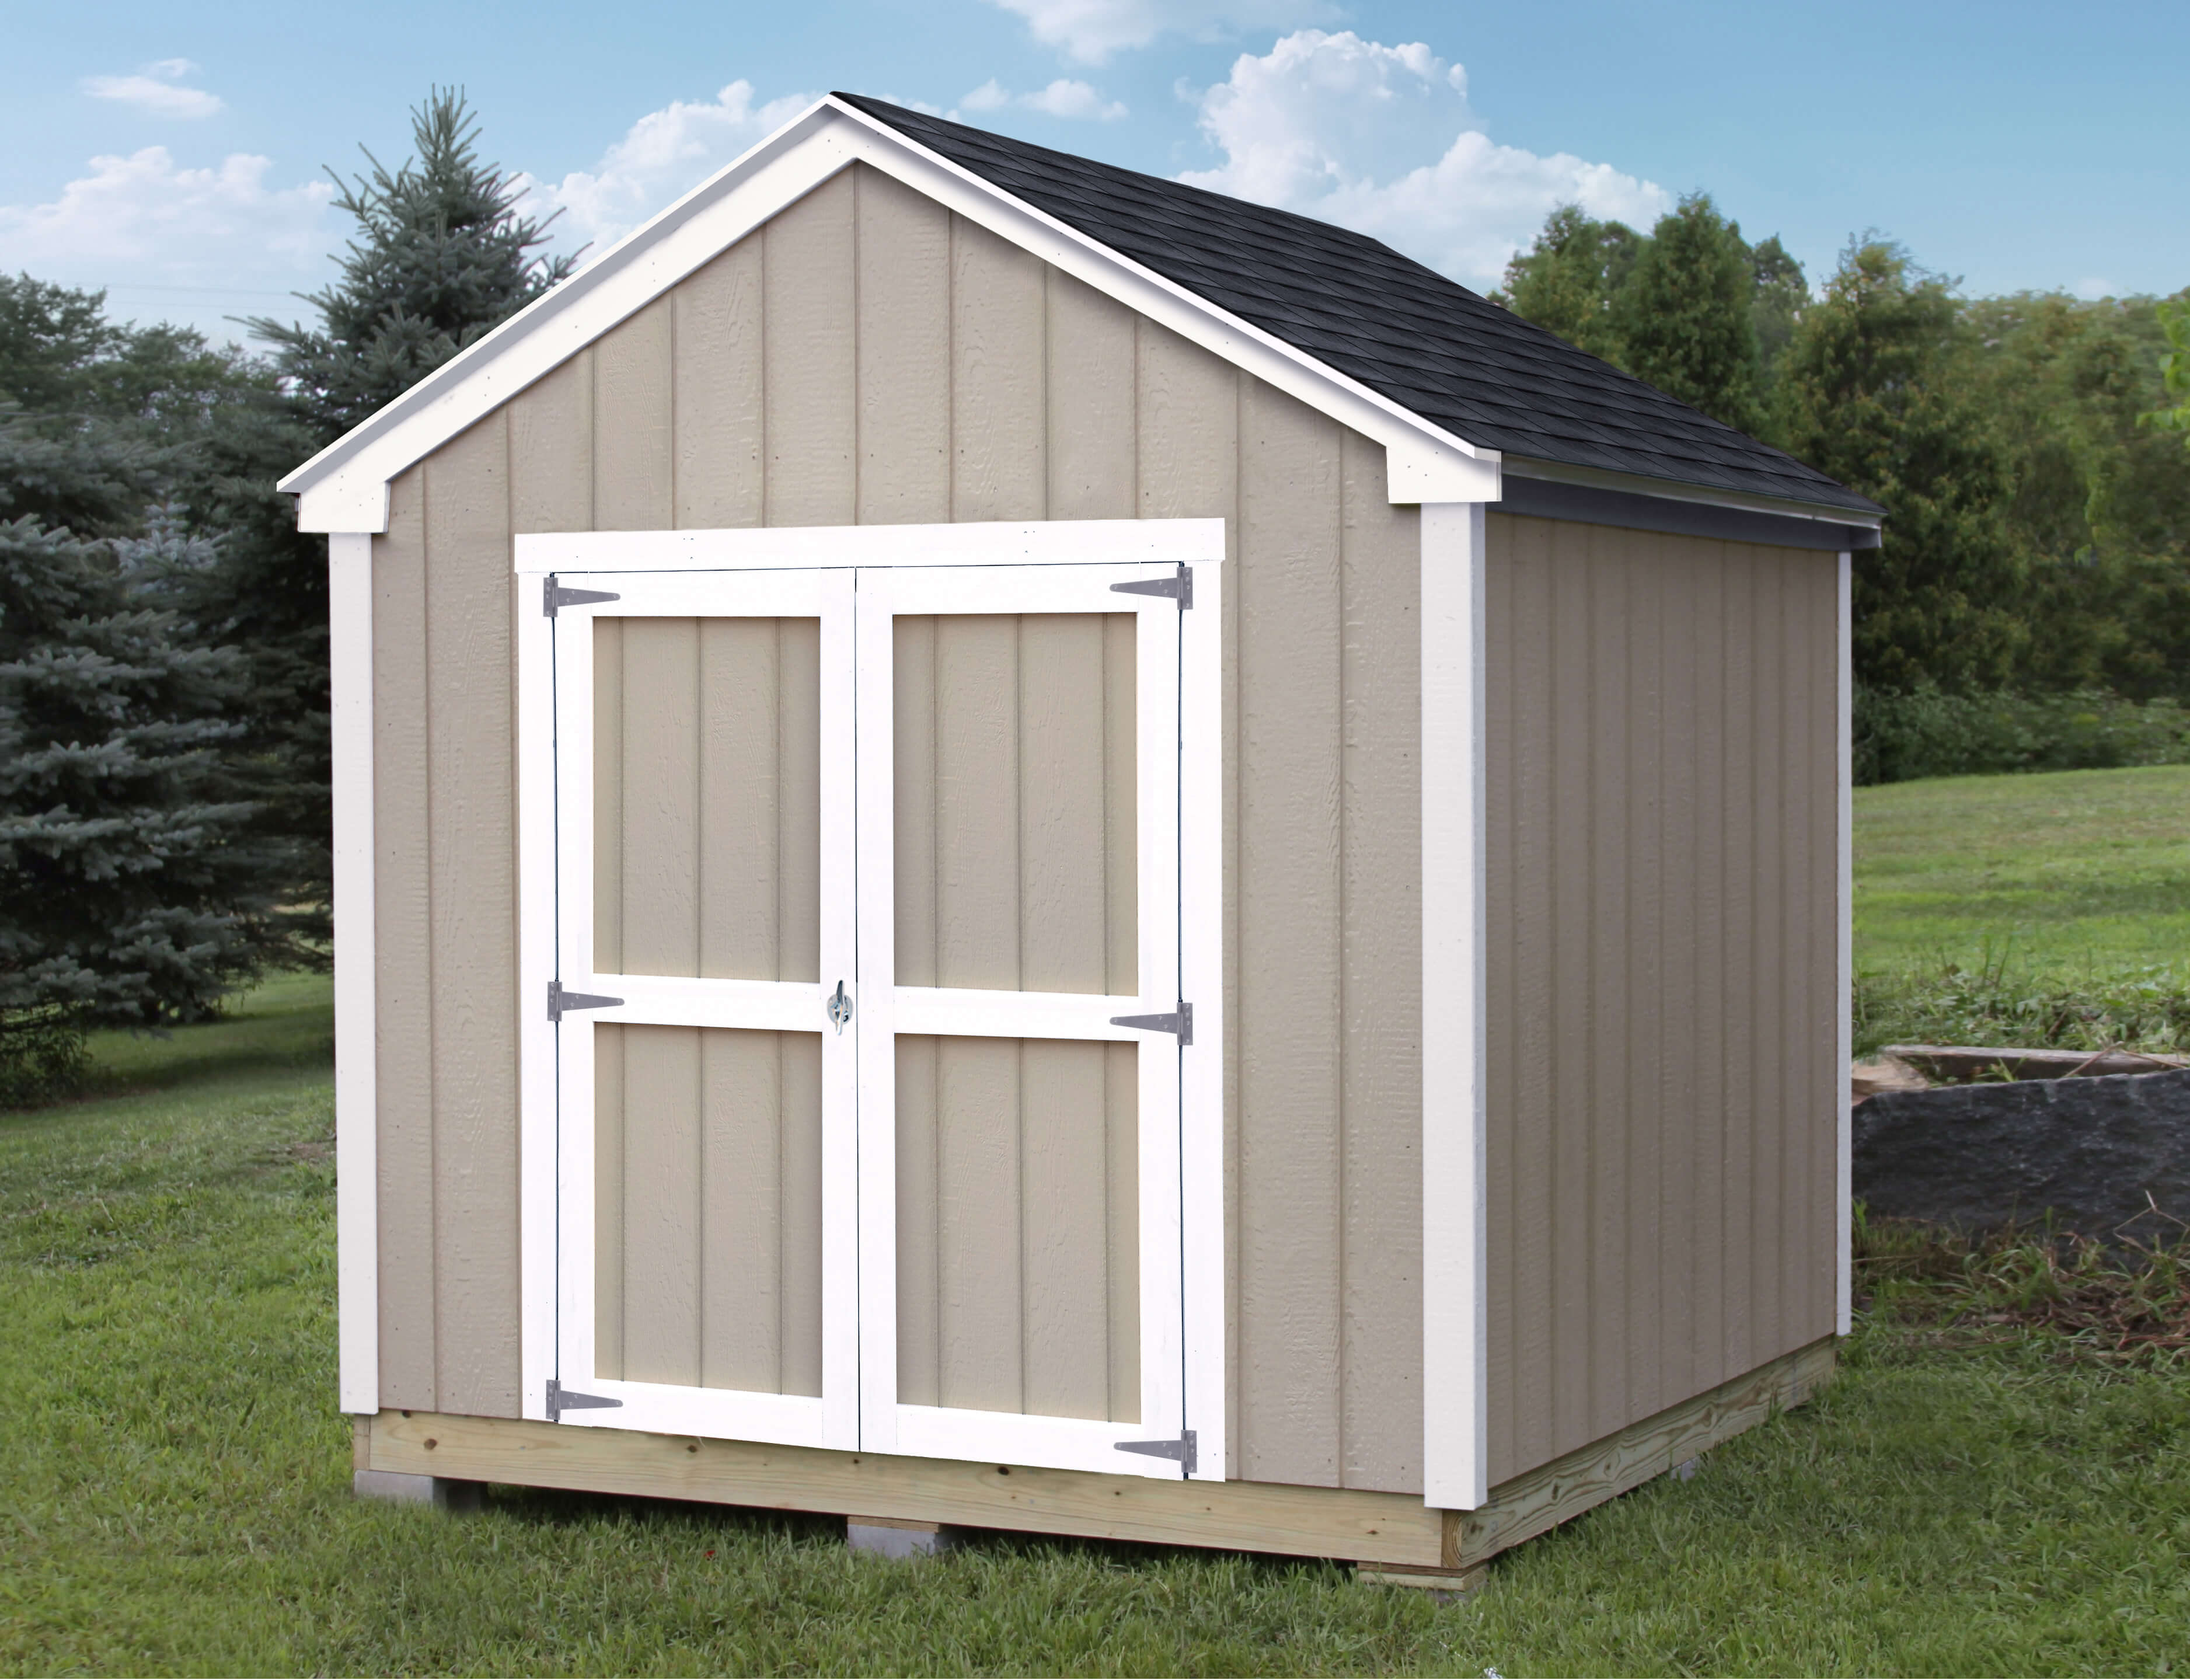 Shed photo